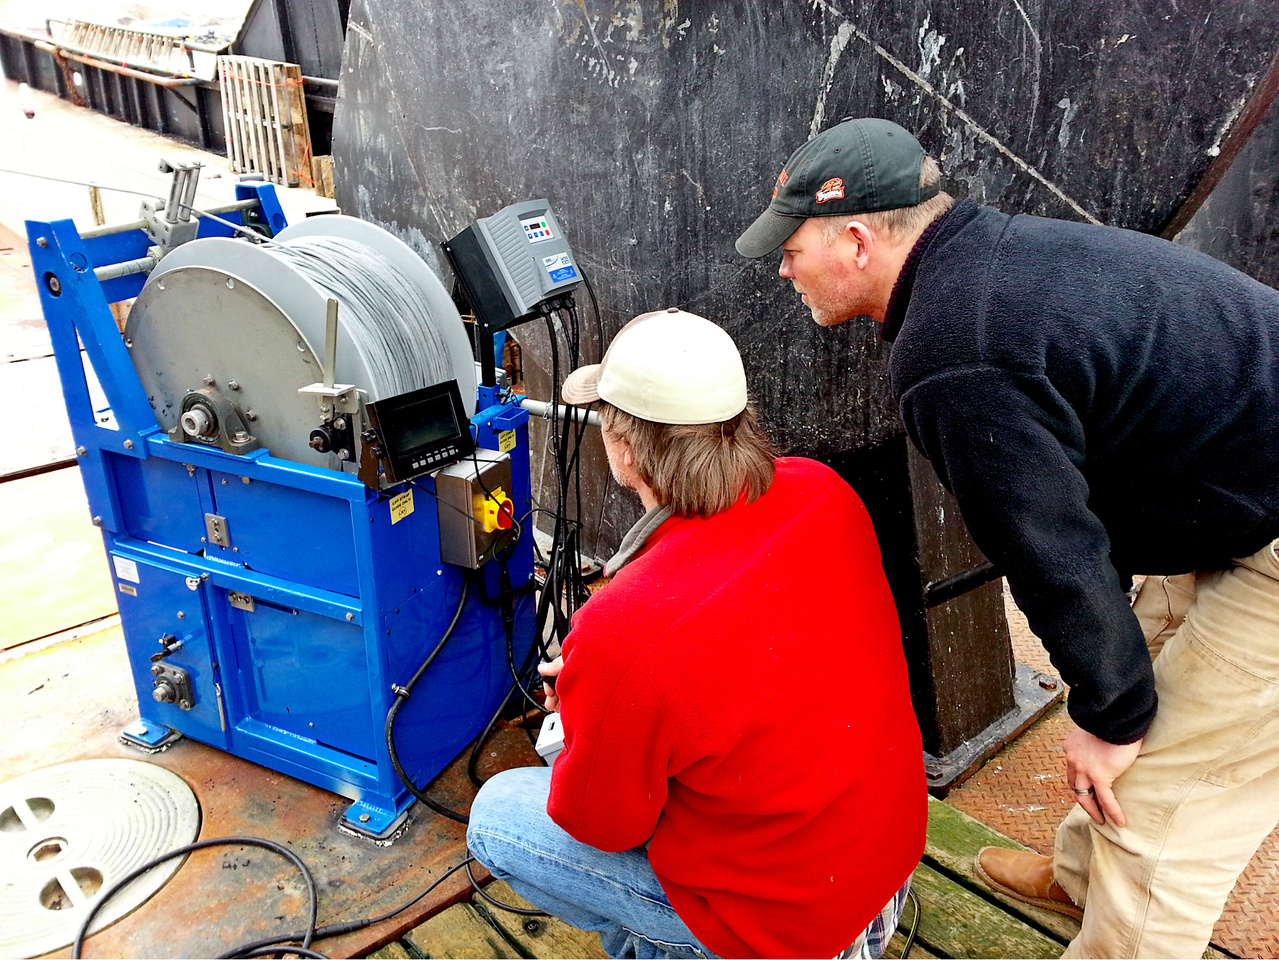 Chris Rooper and John Olson (NMFS-Alaska Regional Office) operating the underwater camera system during a deployment in the Aleutian Islands